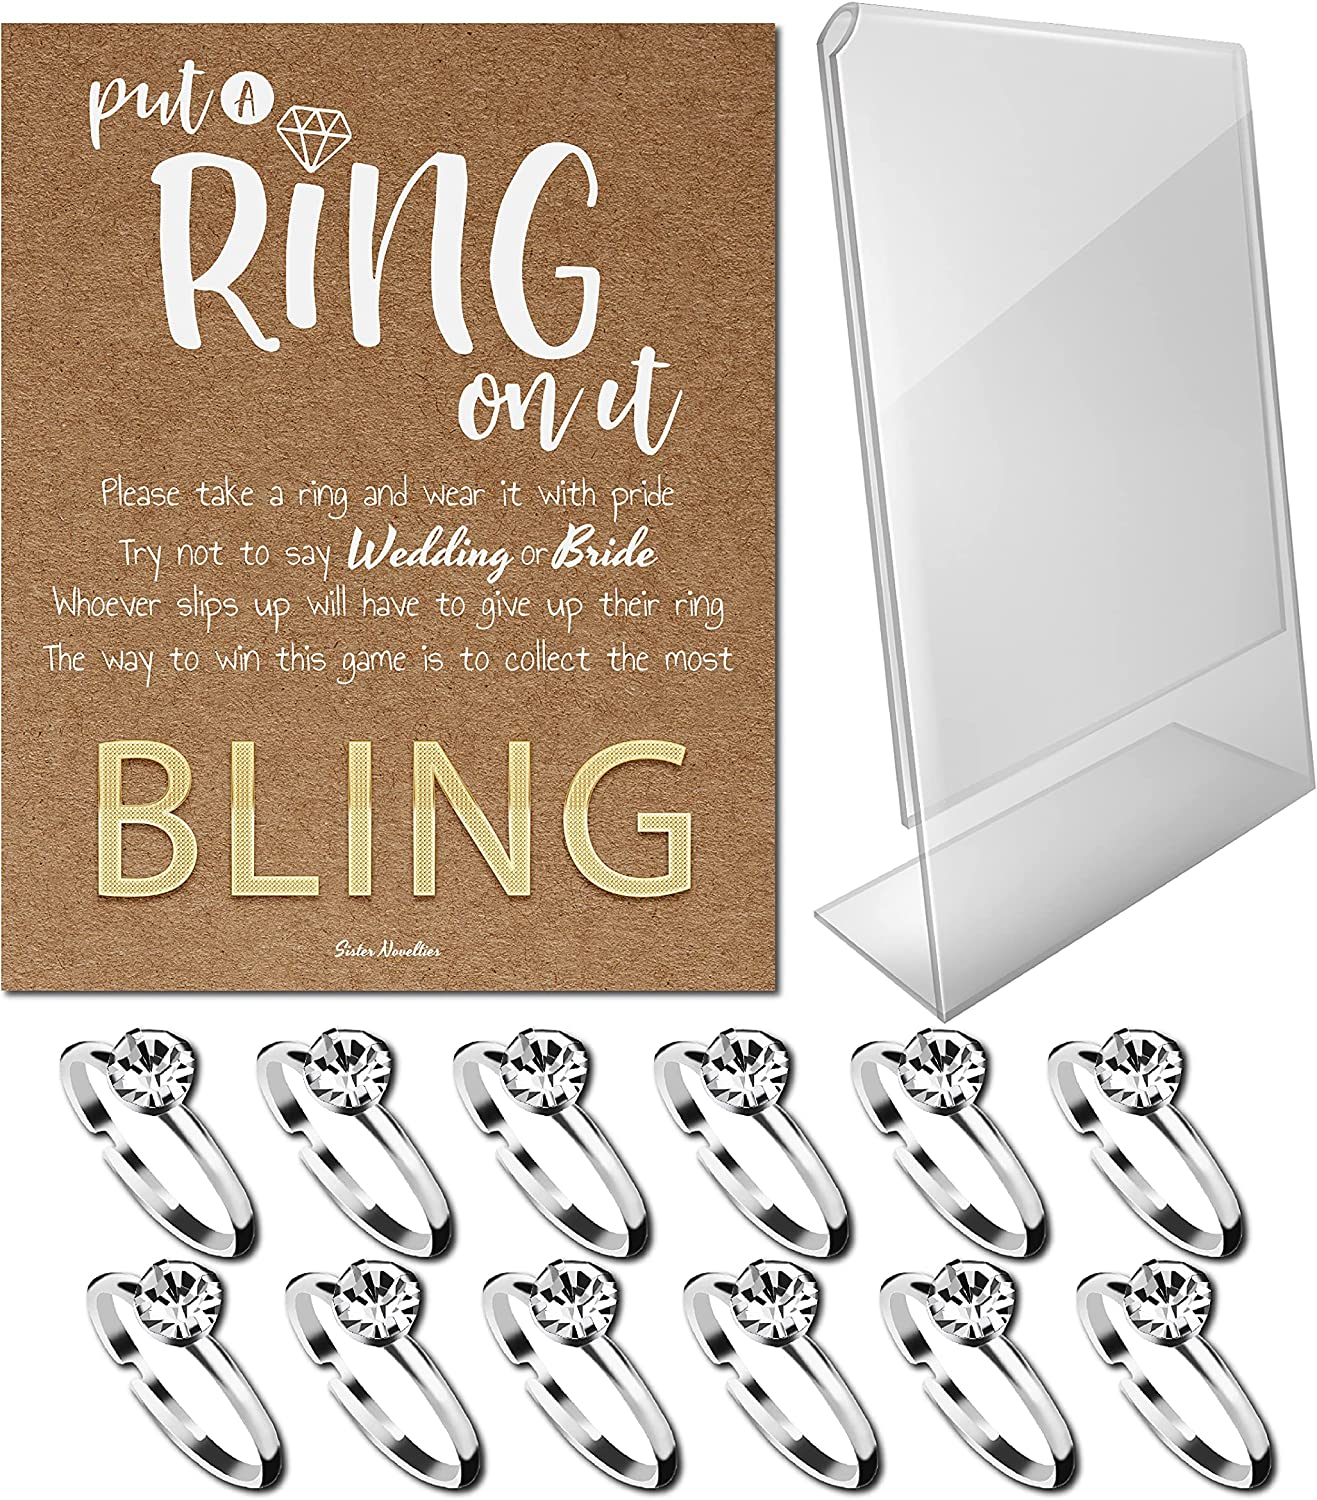 Bridal Shower Games - Put a Ring on It Bridal Shower Game with Fake Rings, Bridal Shower Decor, Bridal Shower Decorations, Bridal Shower Games for Guests (Craft - Silver 12 Count)